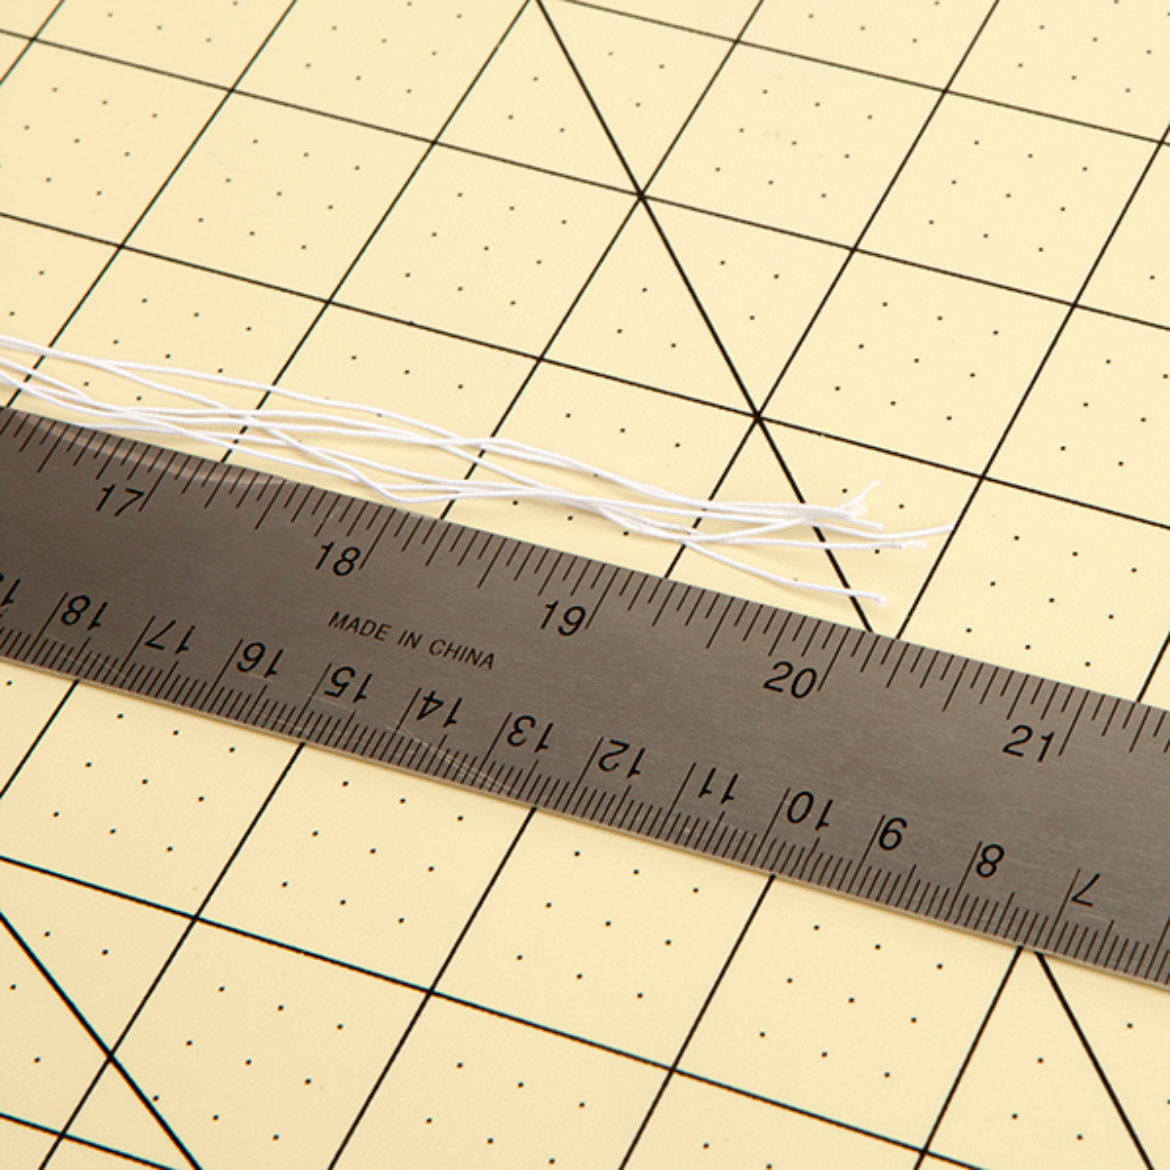 7 pieces of elastic cord being measured to ensure that they are 20 inches long